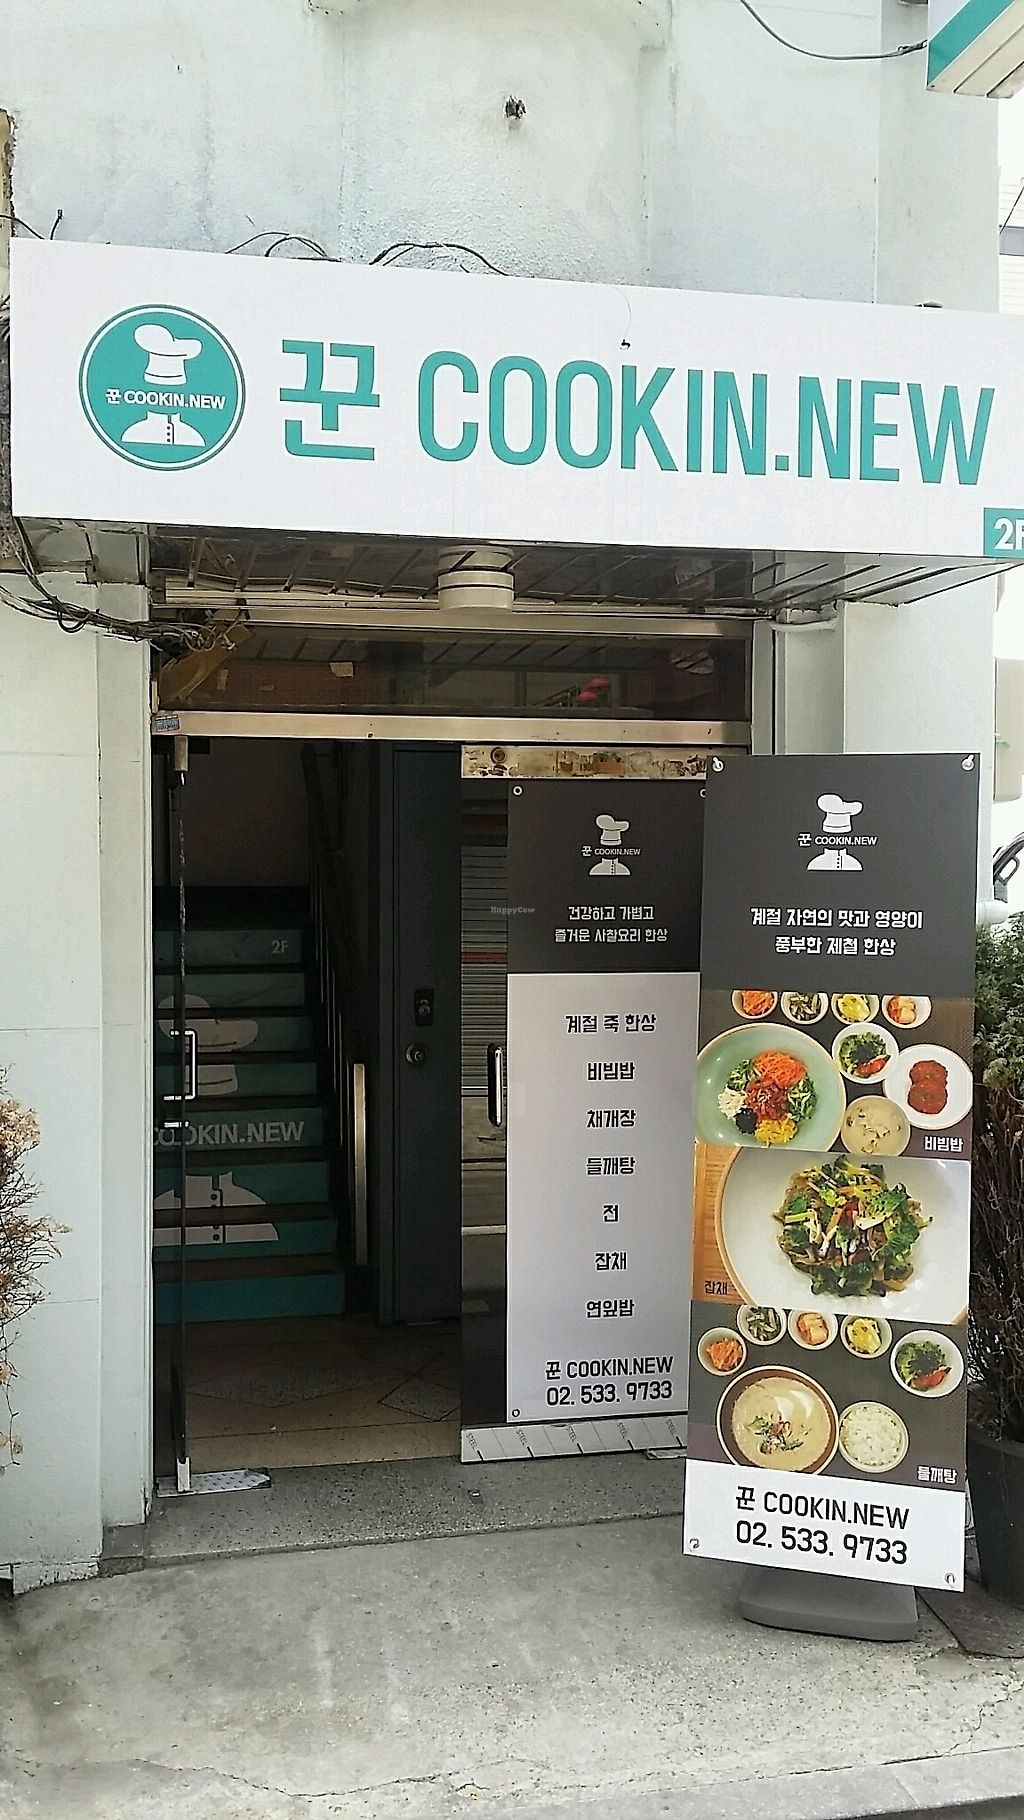 "Photo of Ggun cookin.new - 꾼쿠킨뉴  by <a href=""/members/profile/JiriJerabek"">JiriJerabek</a> <br/>entrance <br/> April 19, 2018  - <a href='/contact/abuse/image/113416/387968'>Report</a>"